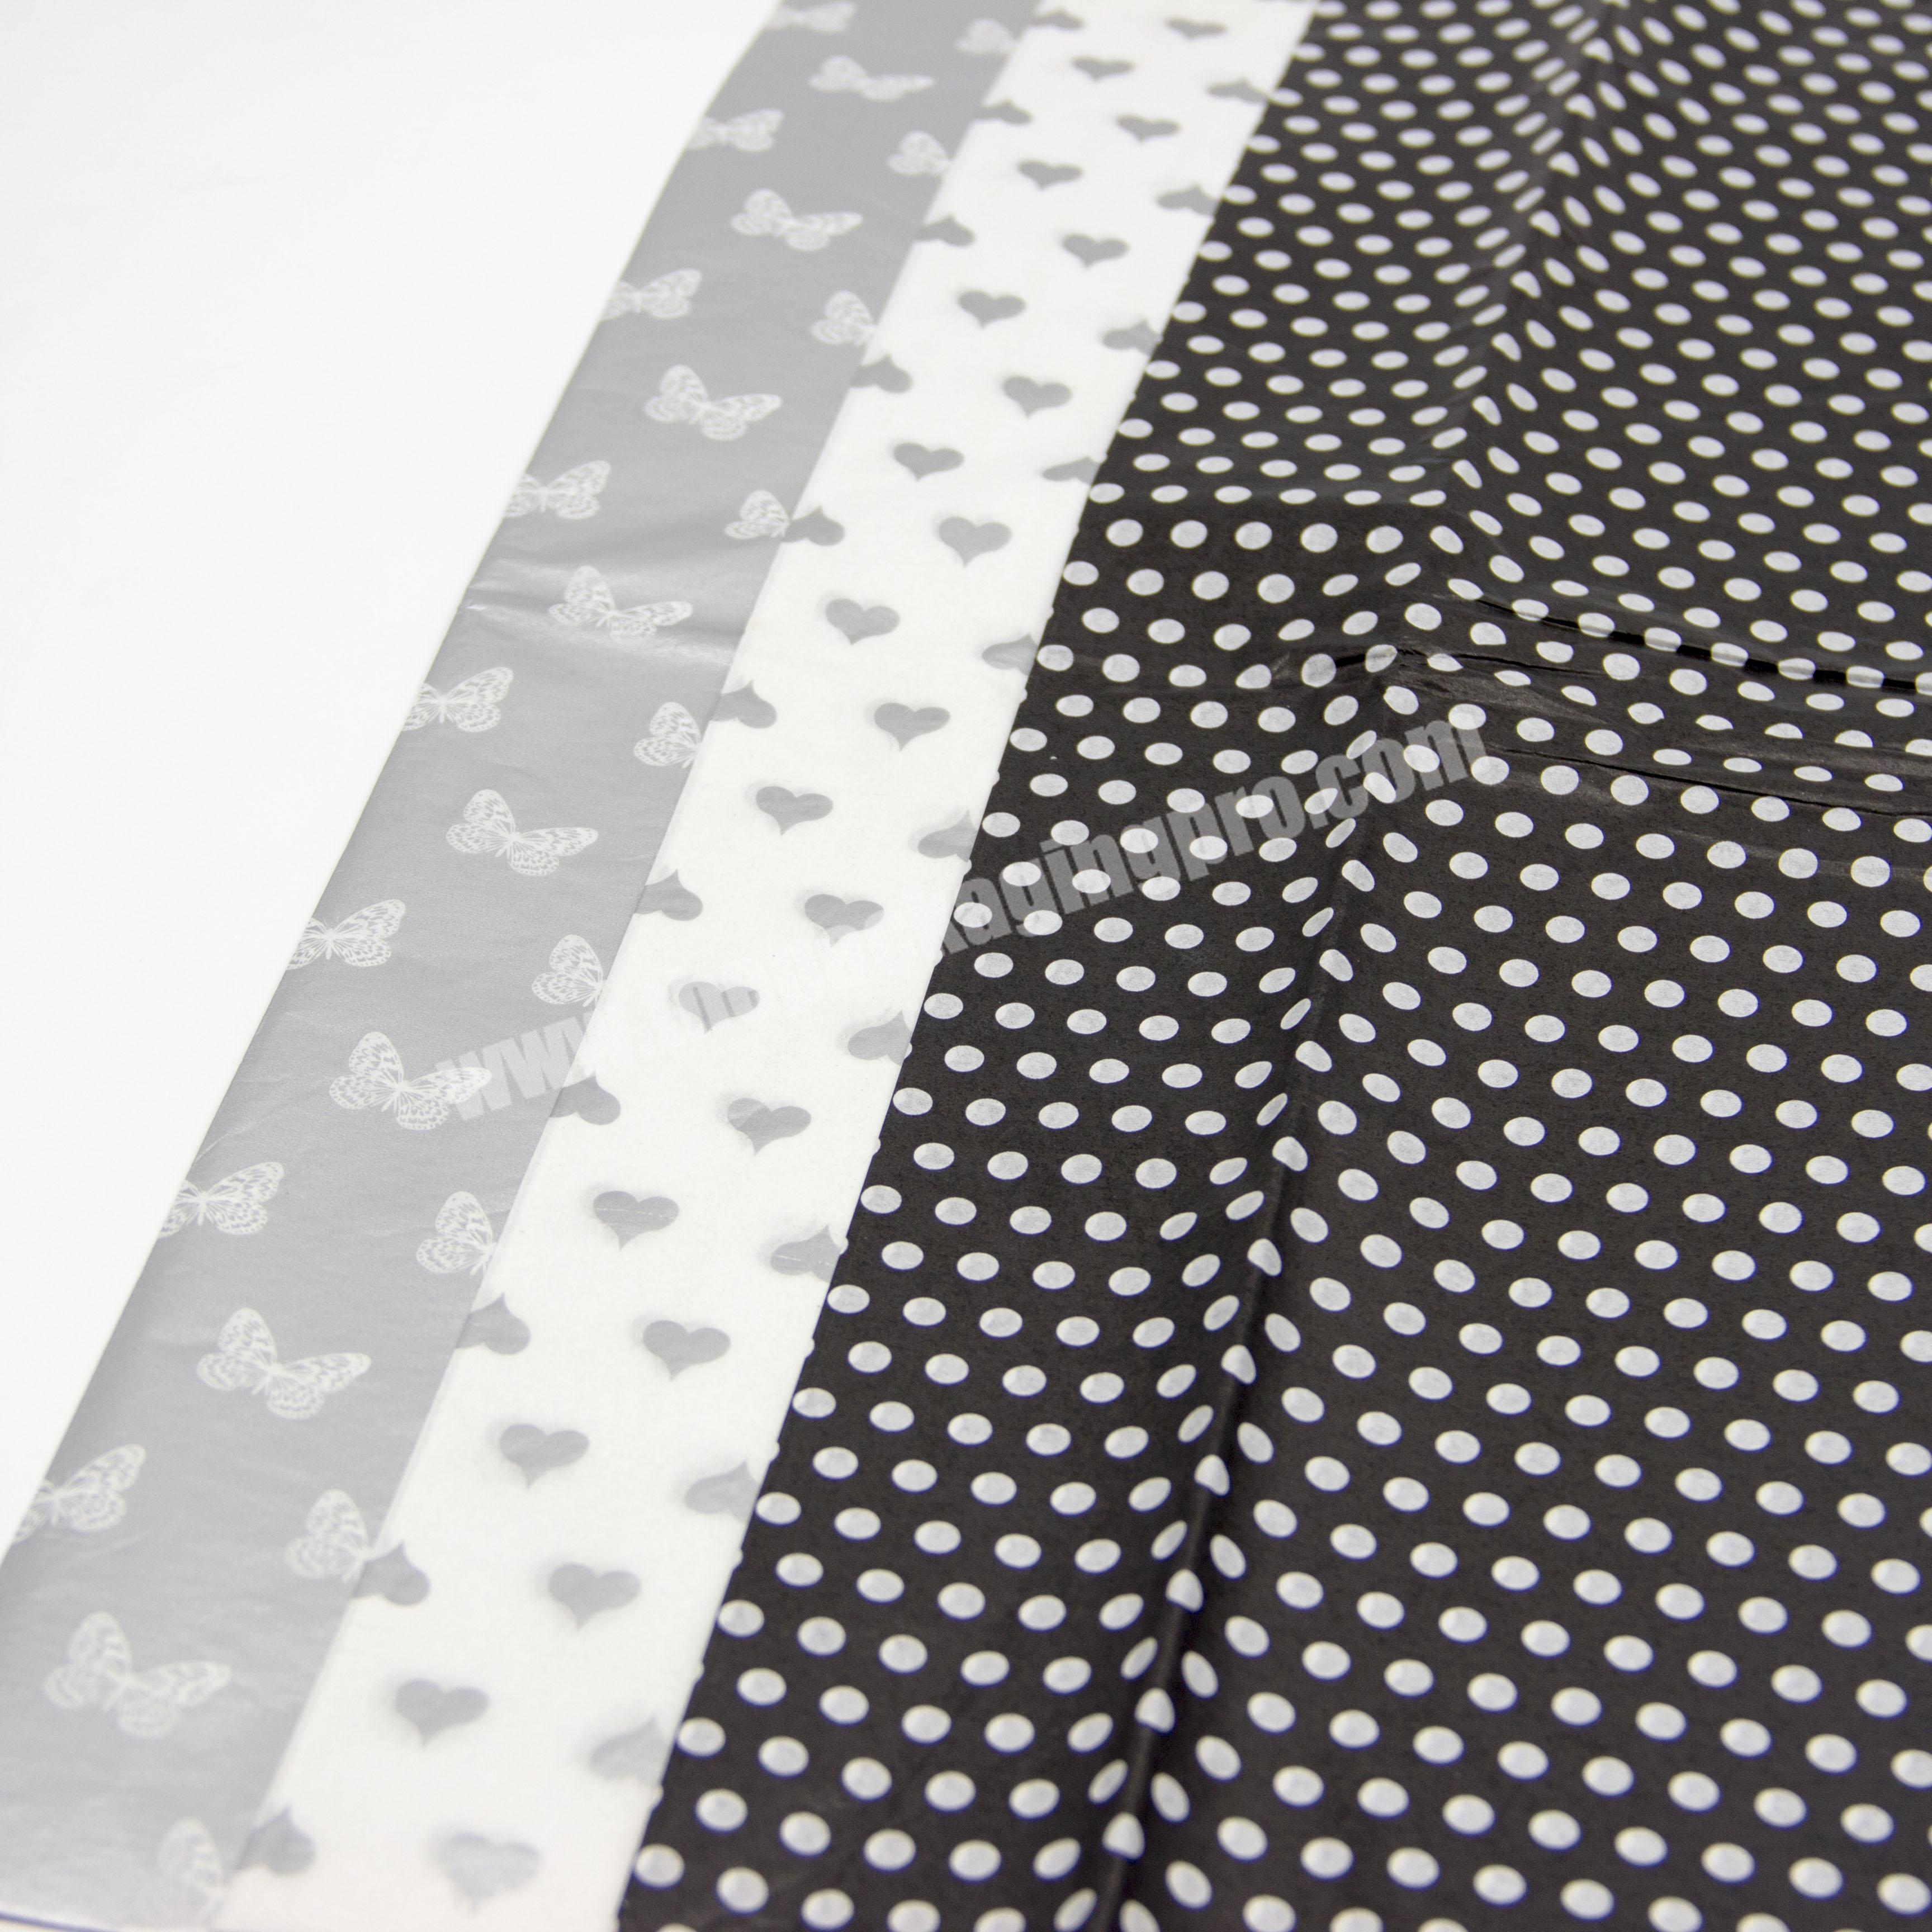 Wholesale Fashionable custom printed tissue wrapping paper clothes wrapping tissue paper with your design